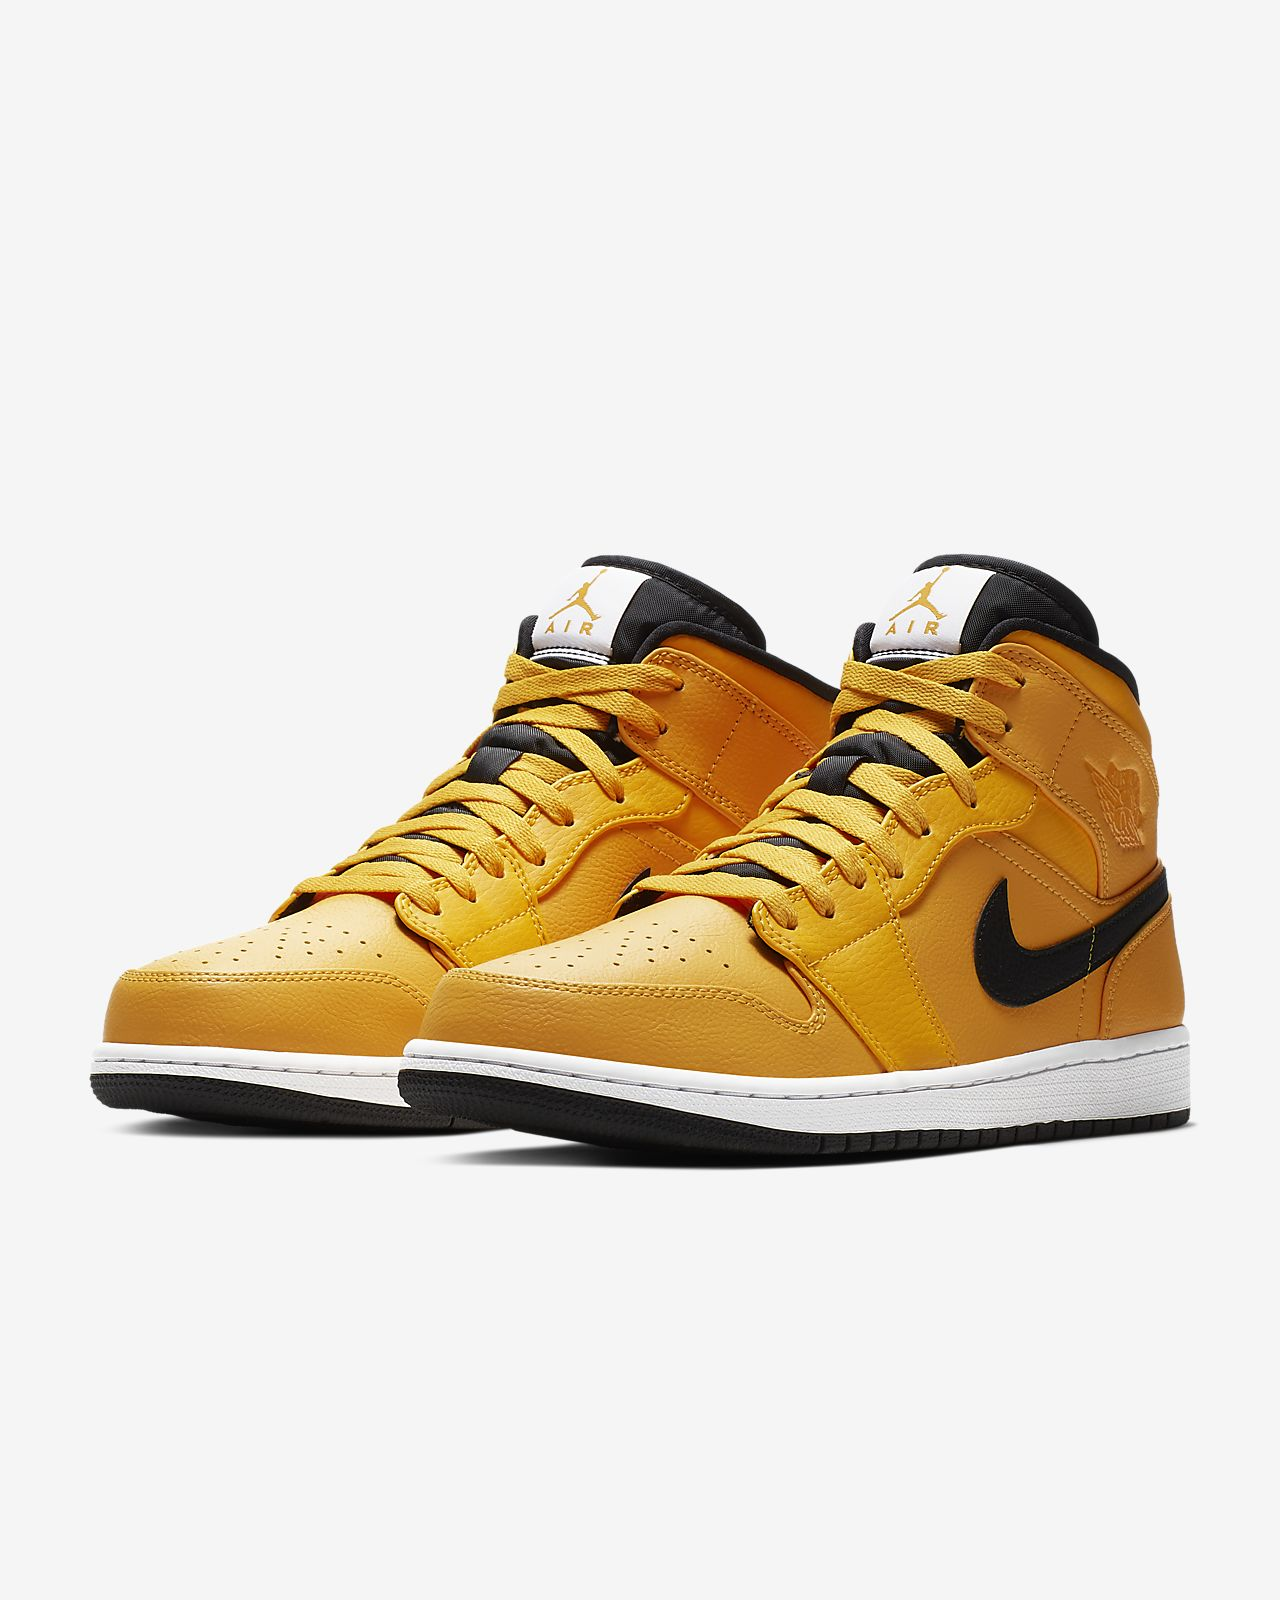 03b63ea1fb8 Air Jordan 1 Mid Men's Shoe. Nike.com